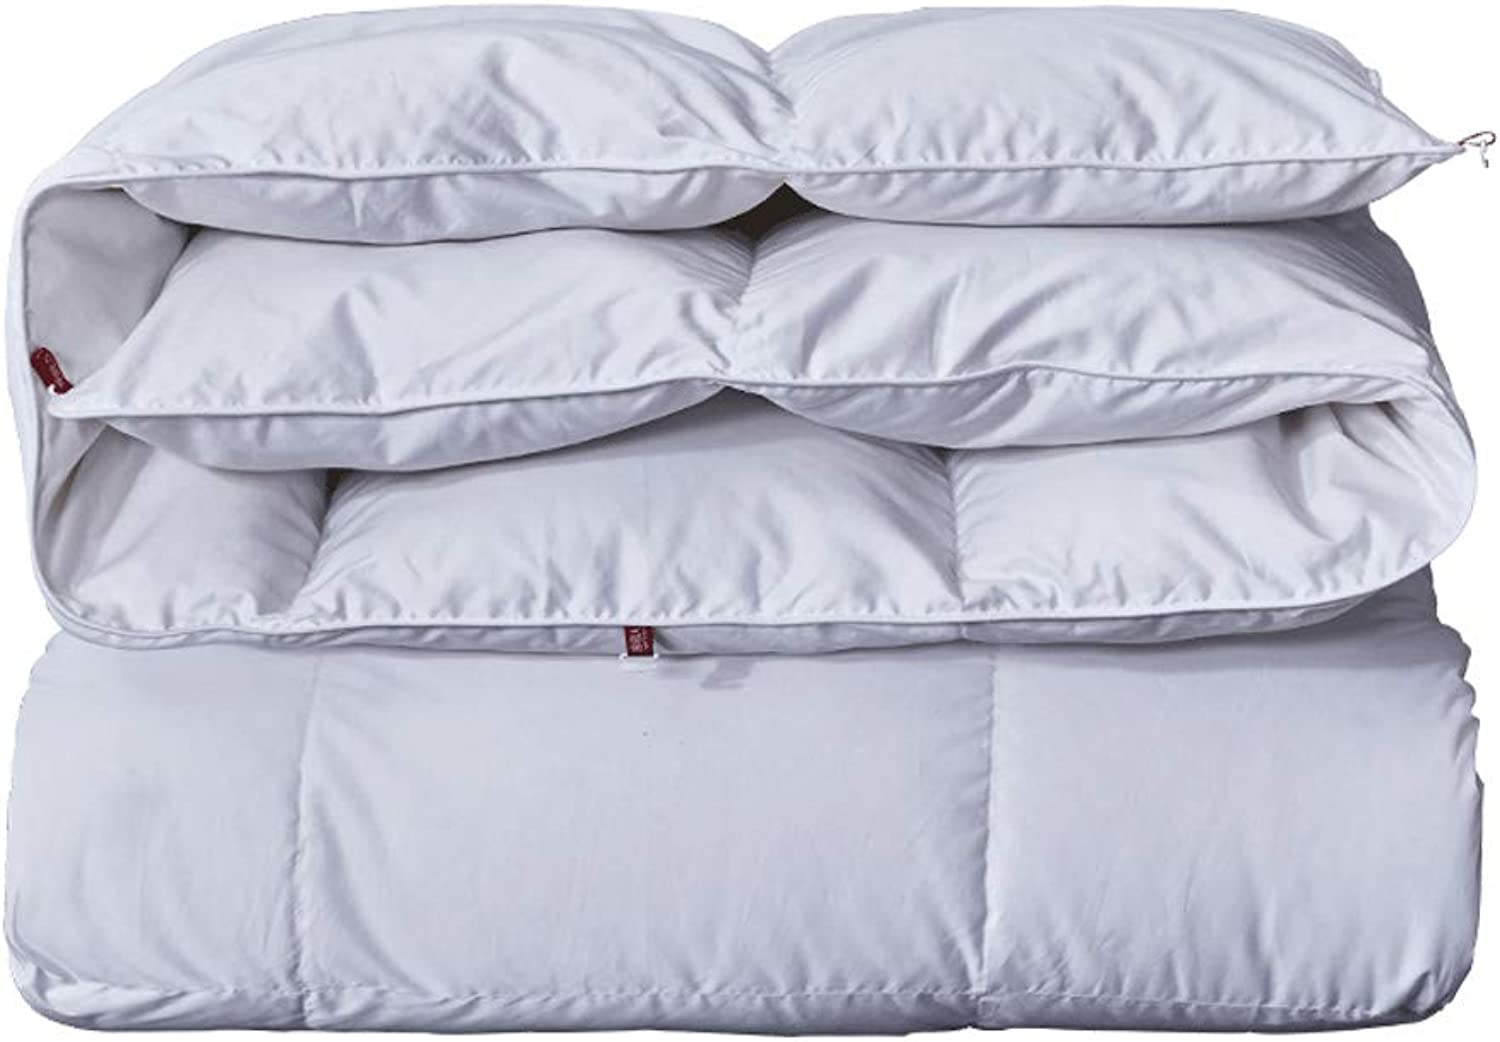 Quilt White Thicken Warm and Soft for All Season All-Season Quilted Comforte Rhypoallergenic 100% Cotton Fabrics Quilted Comforter with Corner Tabs (Size   150cmx200cm2.5kg)